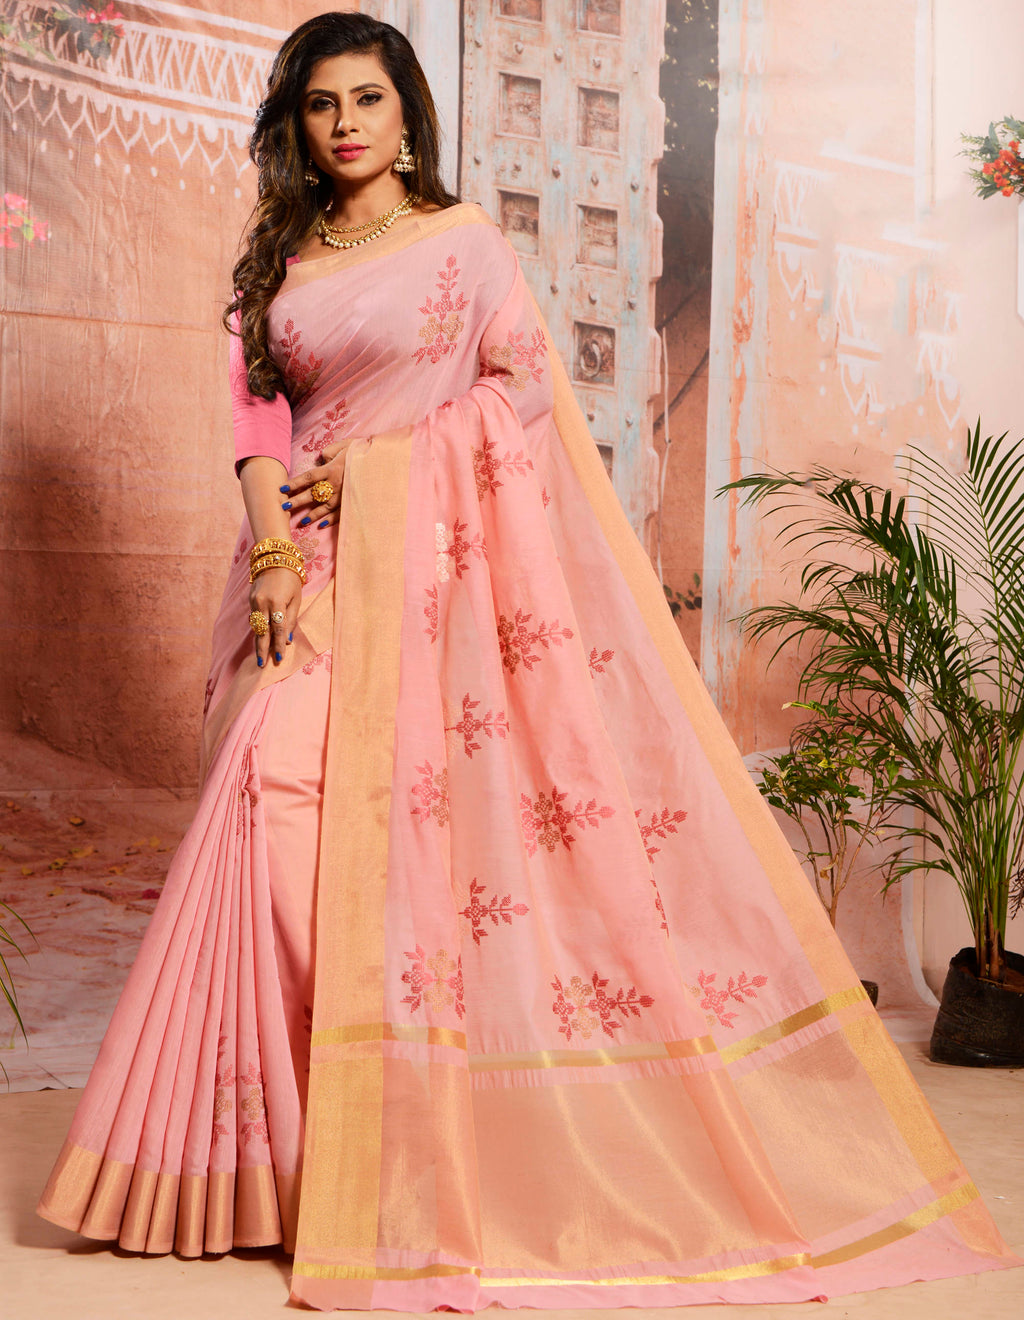 Pink Color Cotton Elegant Function Wear Sarees NYF-7345